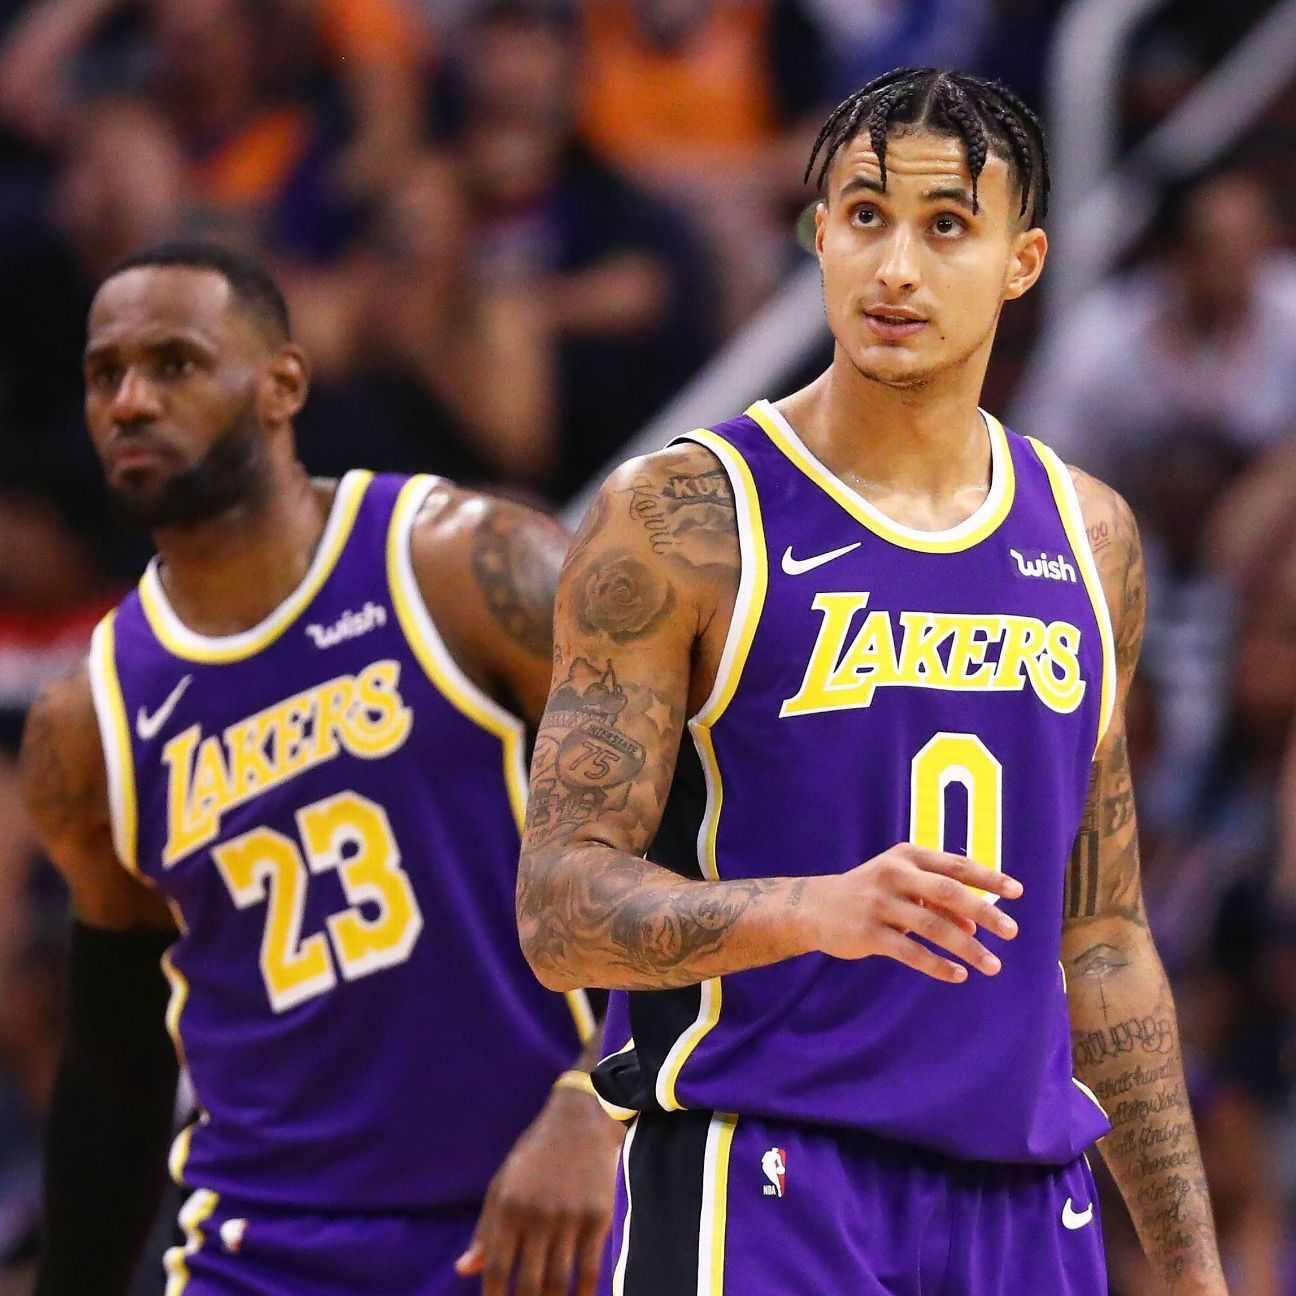 Ho Wun Lakers Vs Cavaliers >> Markelle Fultz Takes Over Late In Win Vs Lakers Showed What